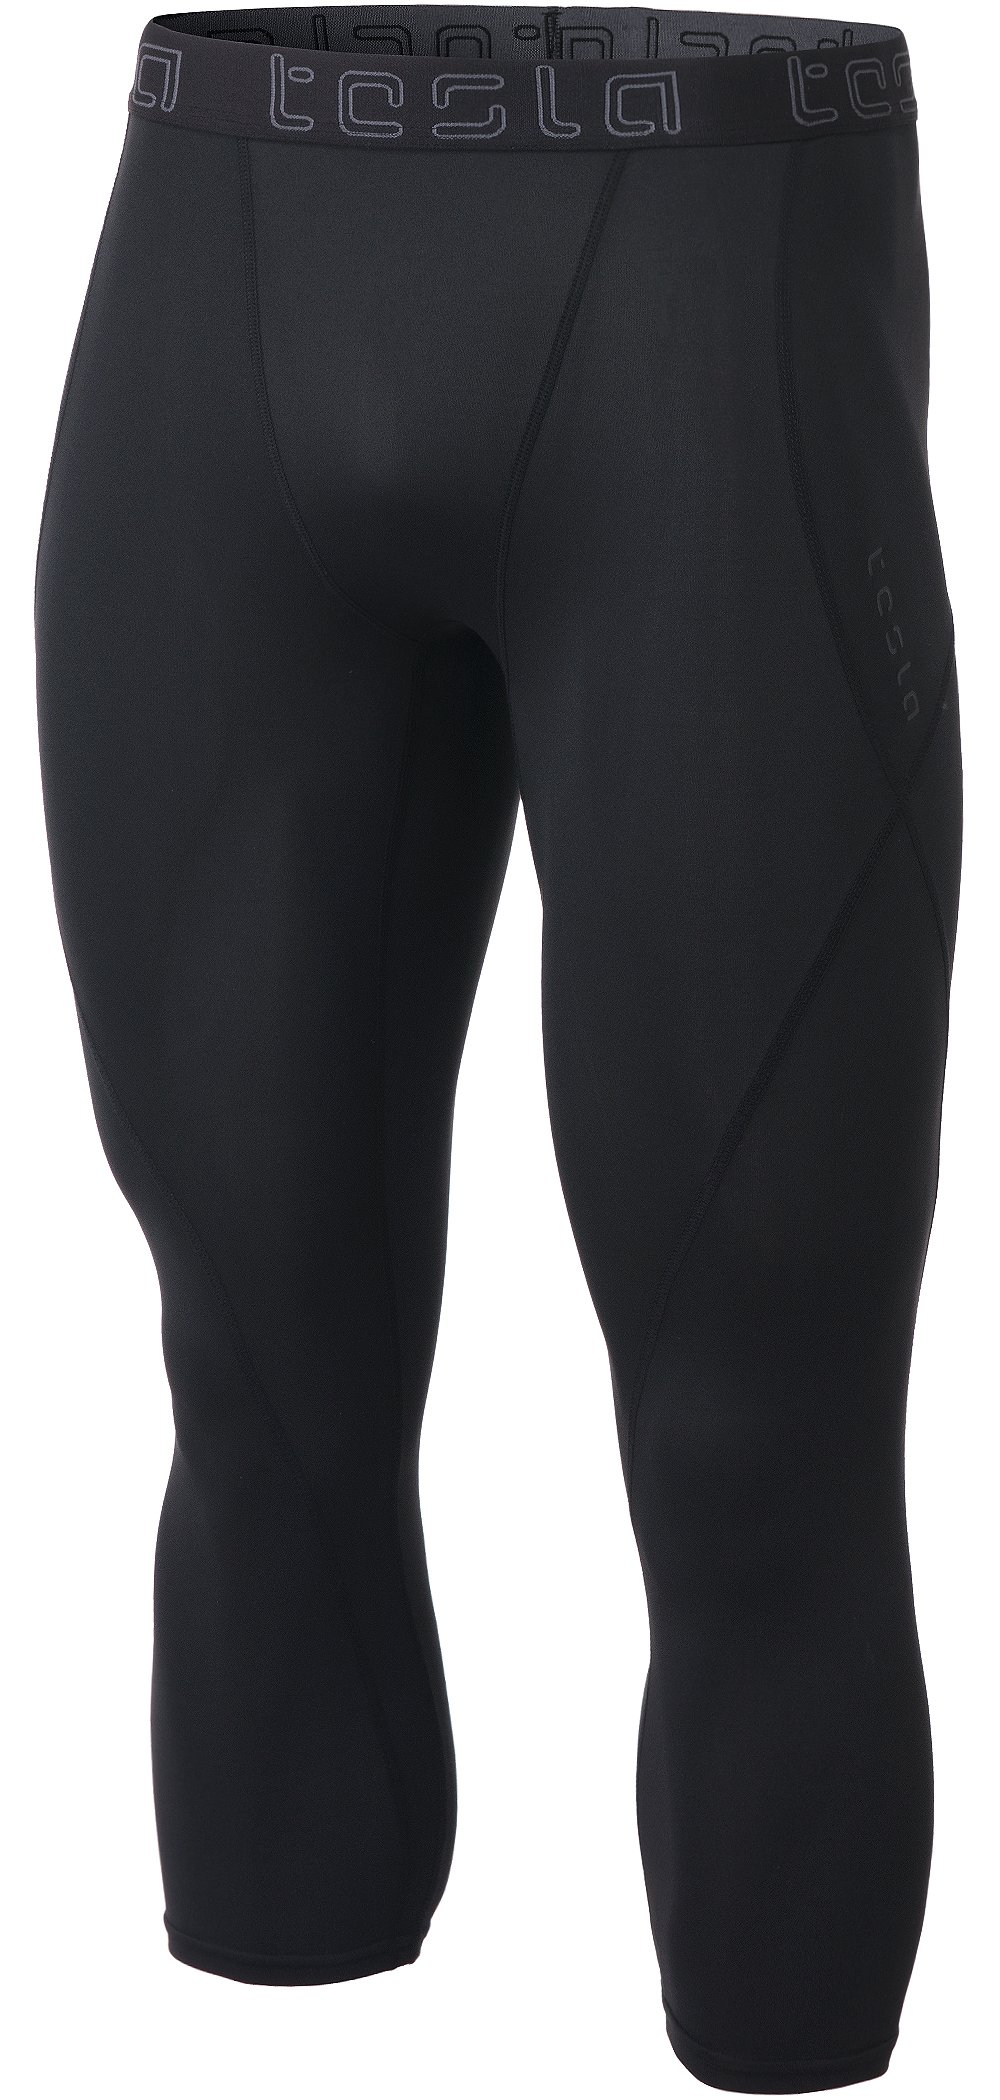 TM-MUC18-KLB_X-Small Tesla Men's Compression Capri Shorts Baselayer Cool Dry Sports Tights MUC18